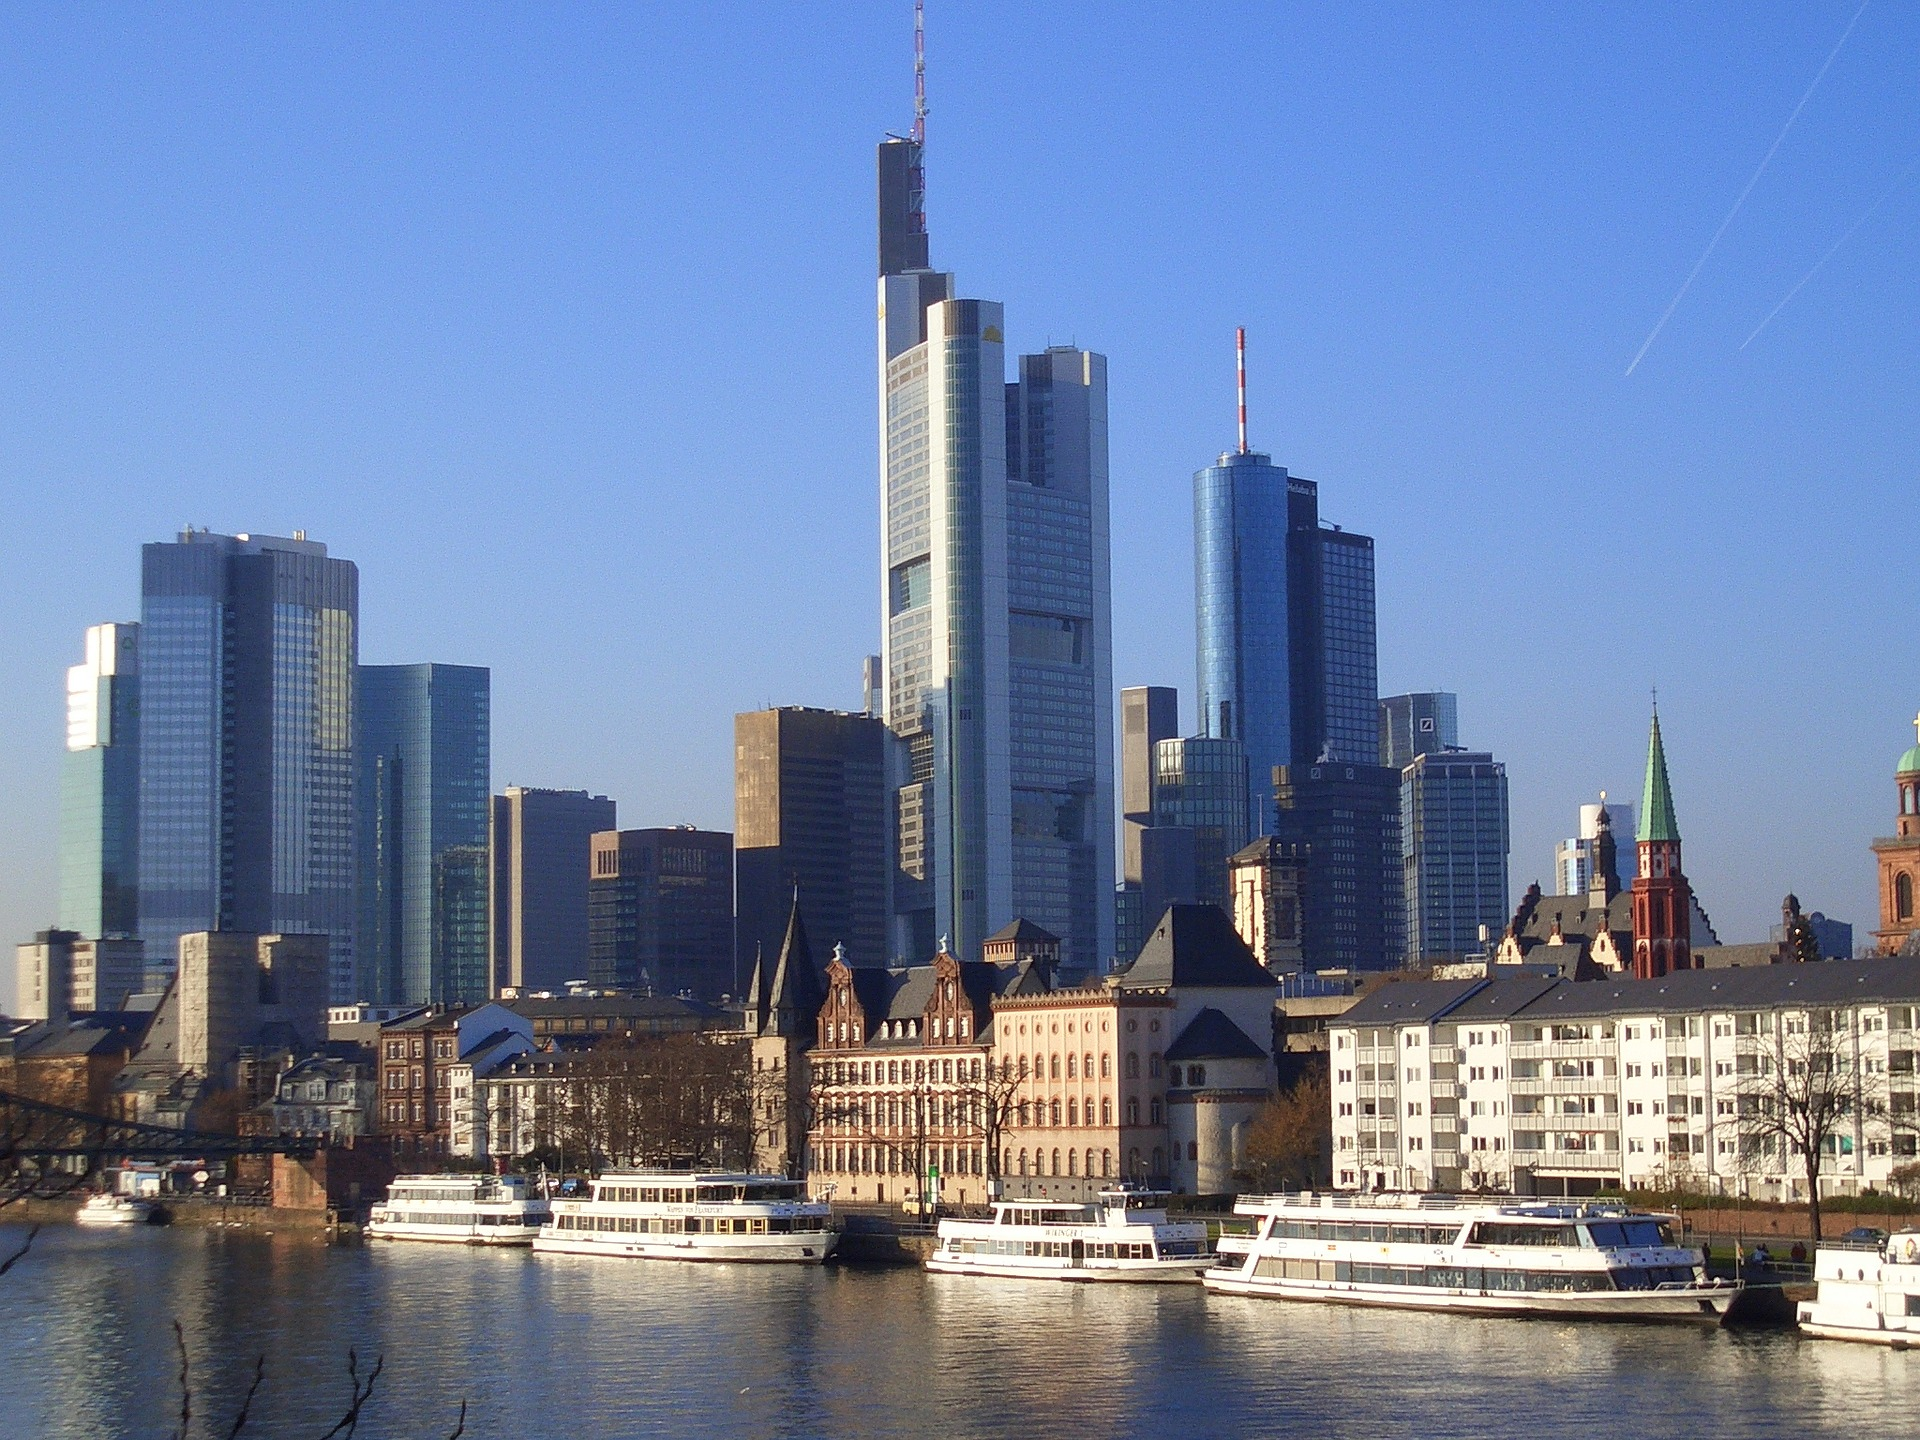 Commerzbank AG tower in Mainhattan, Frankfurt, Germany